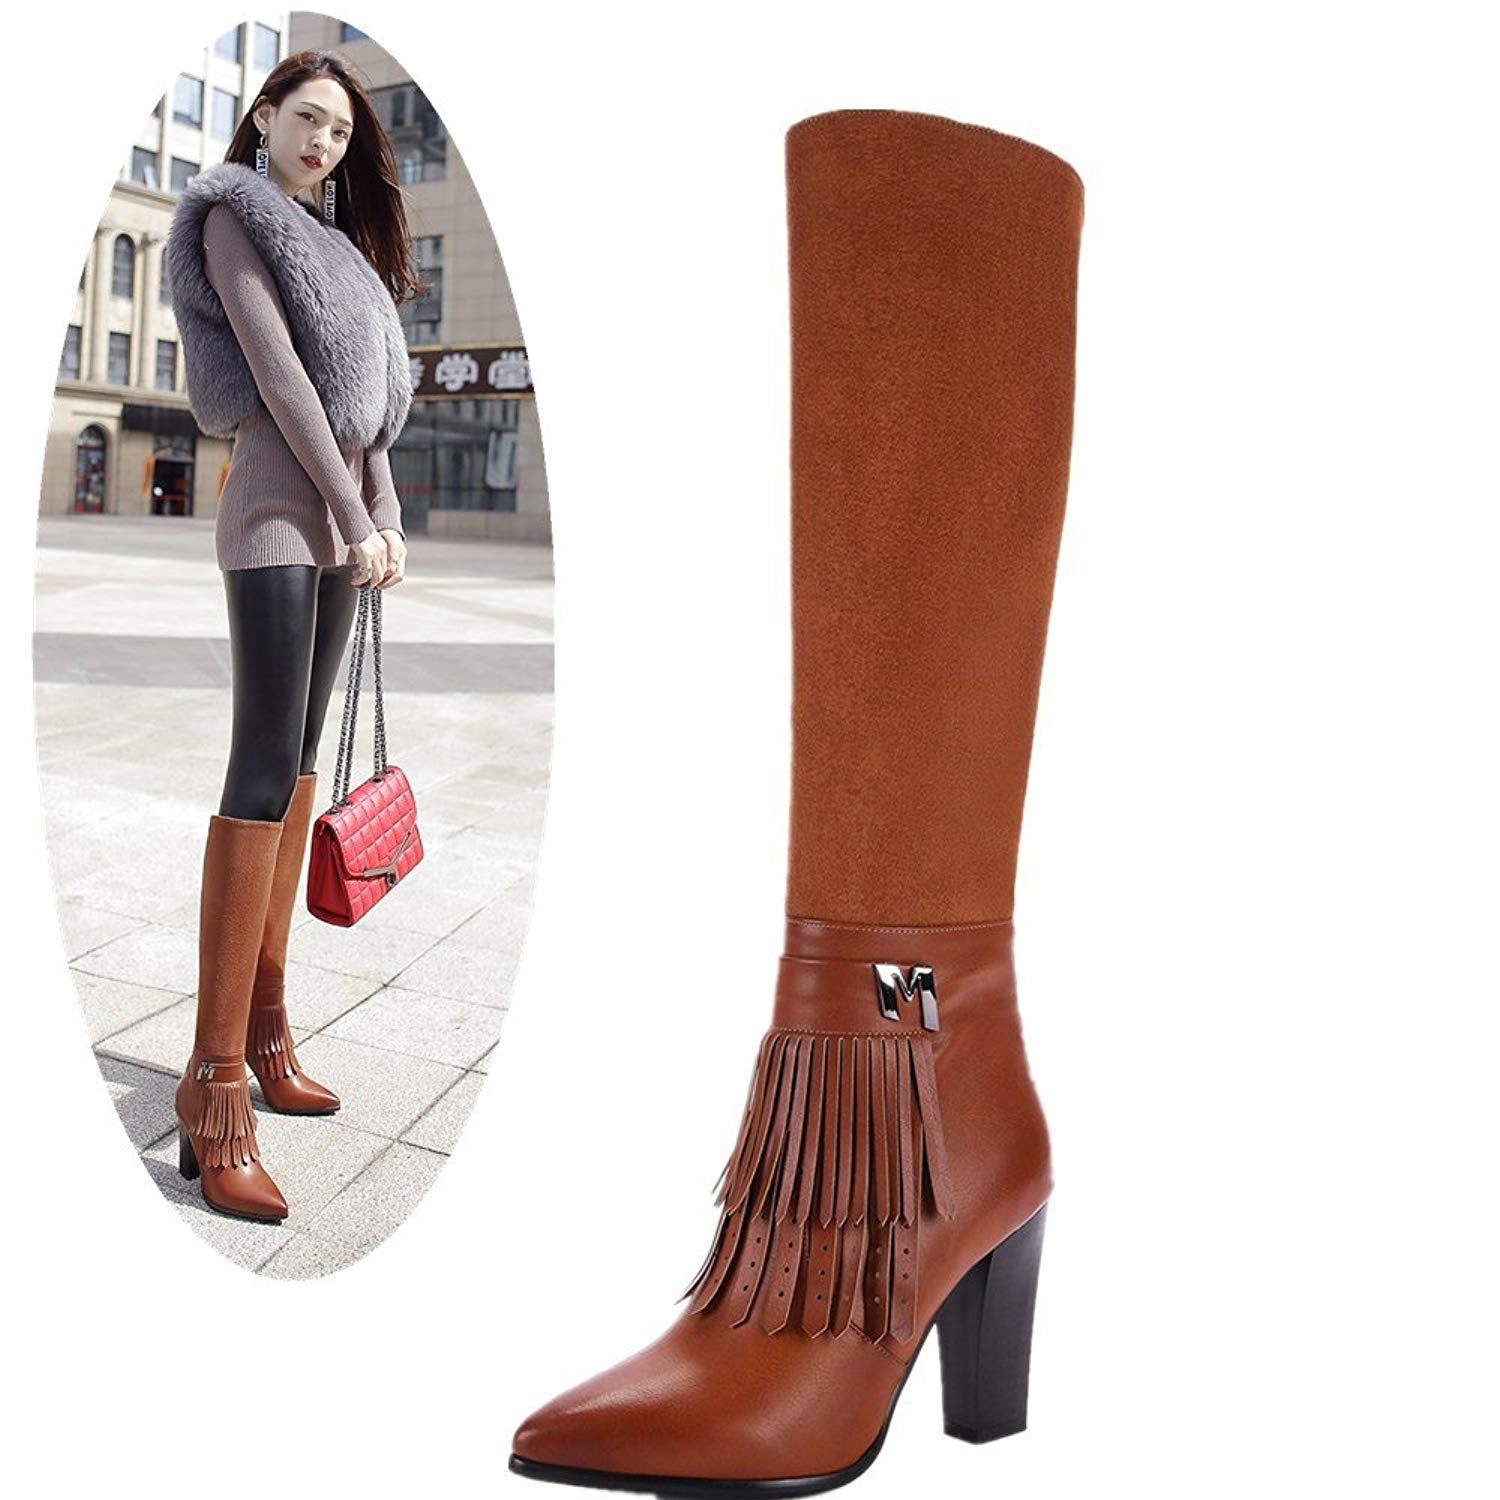 a368ecc5b54 Get Quotations · NIQI Women High Heel Boots Pointed Toe Knee High Heel  Fringe Boots Suede Leather Tall Boots